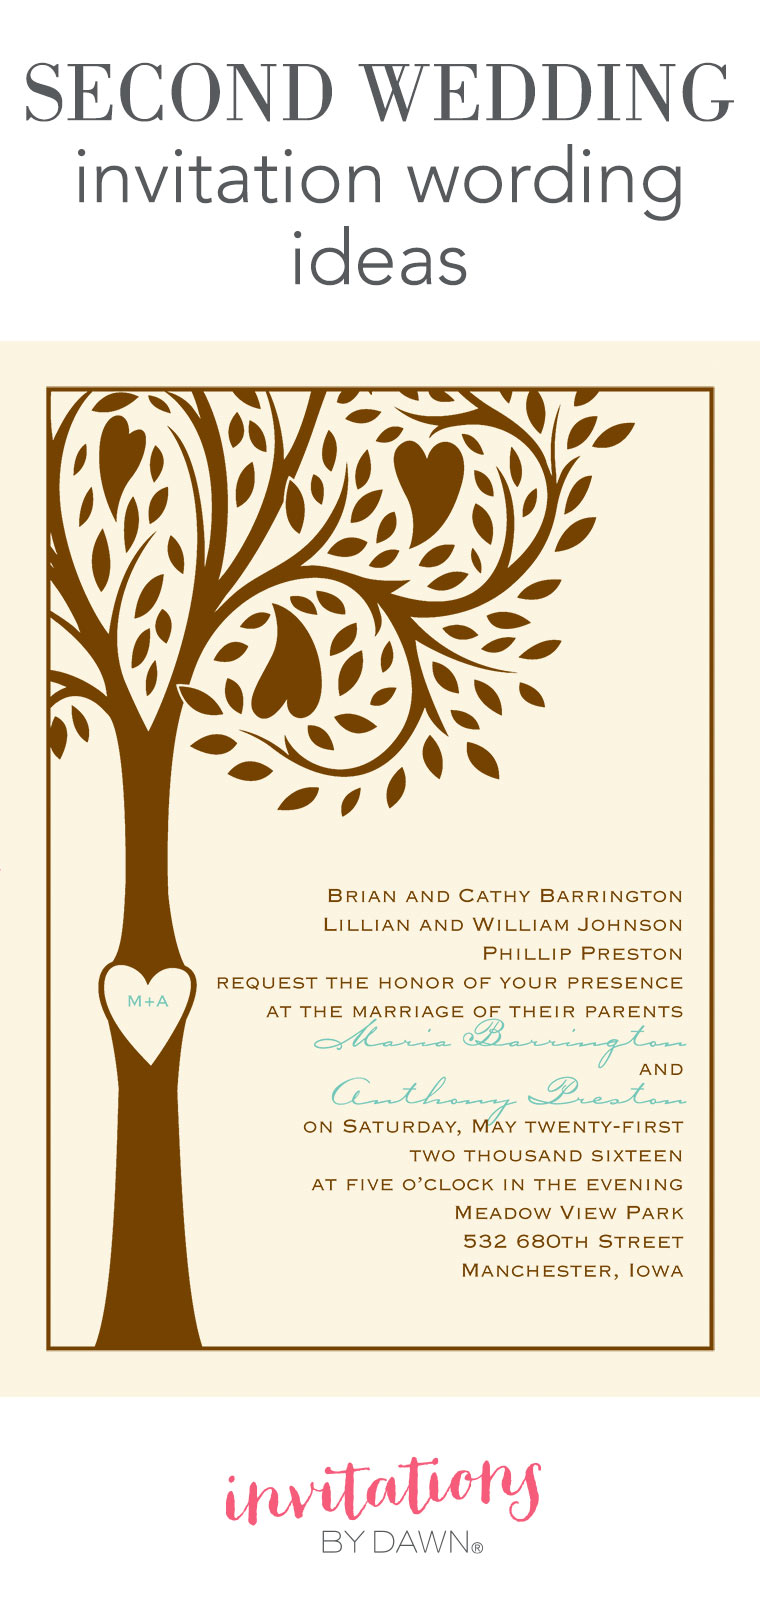 second wedding invitation wording | invitations by dawn, Wedding invitations